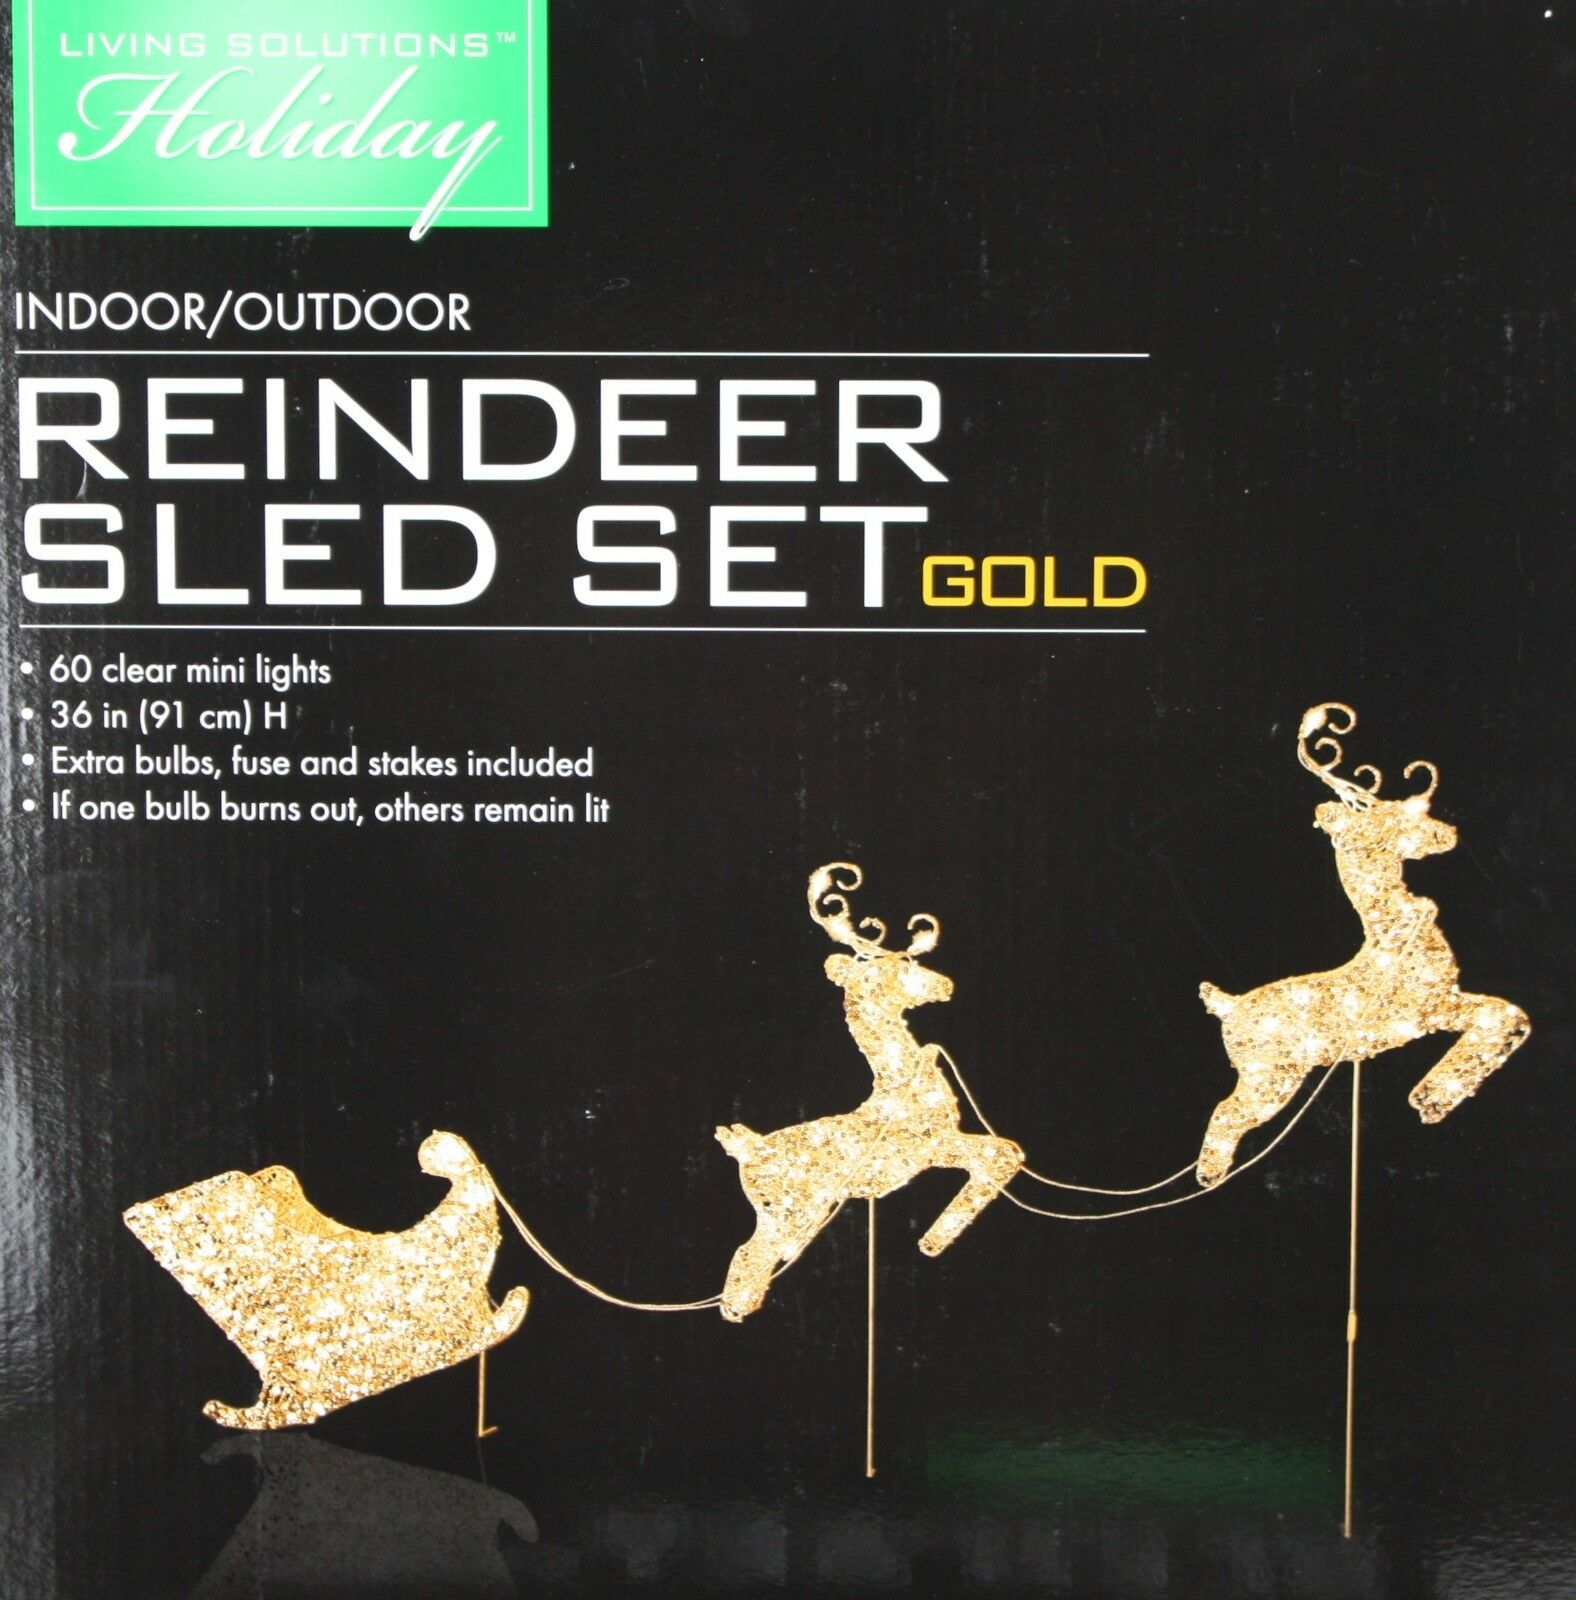 Living Solutions Reindeer Gold Sled Set 36 In H 60 Clear Mini Lights NIB 3